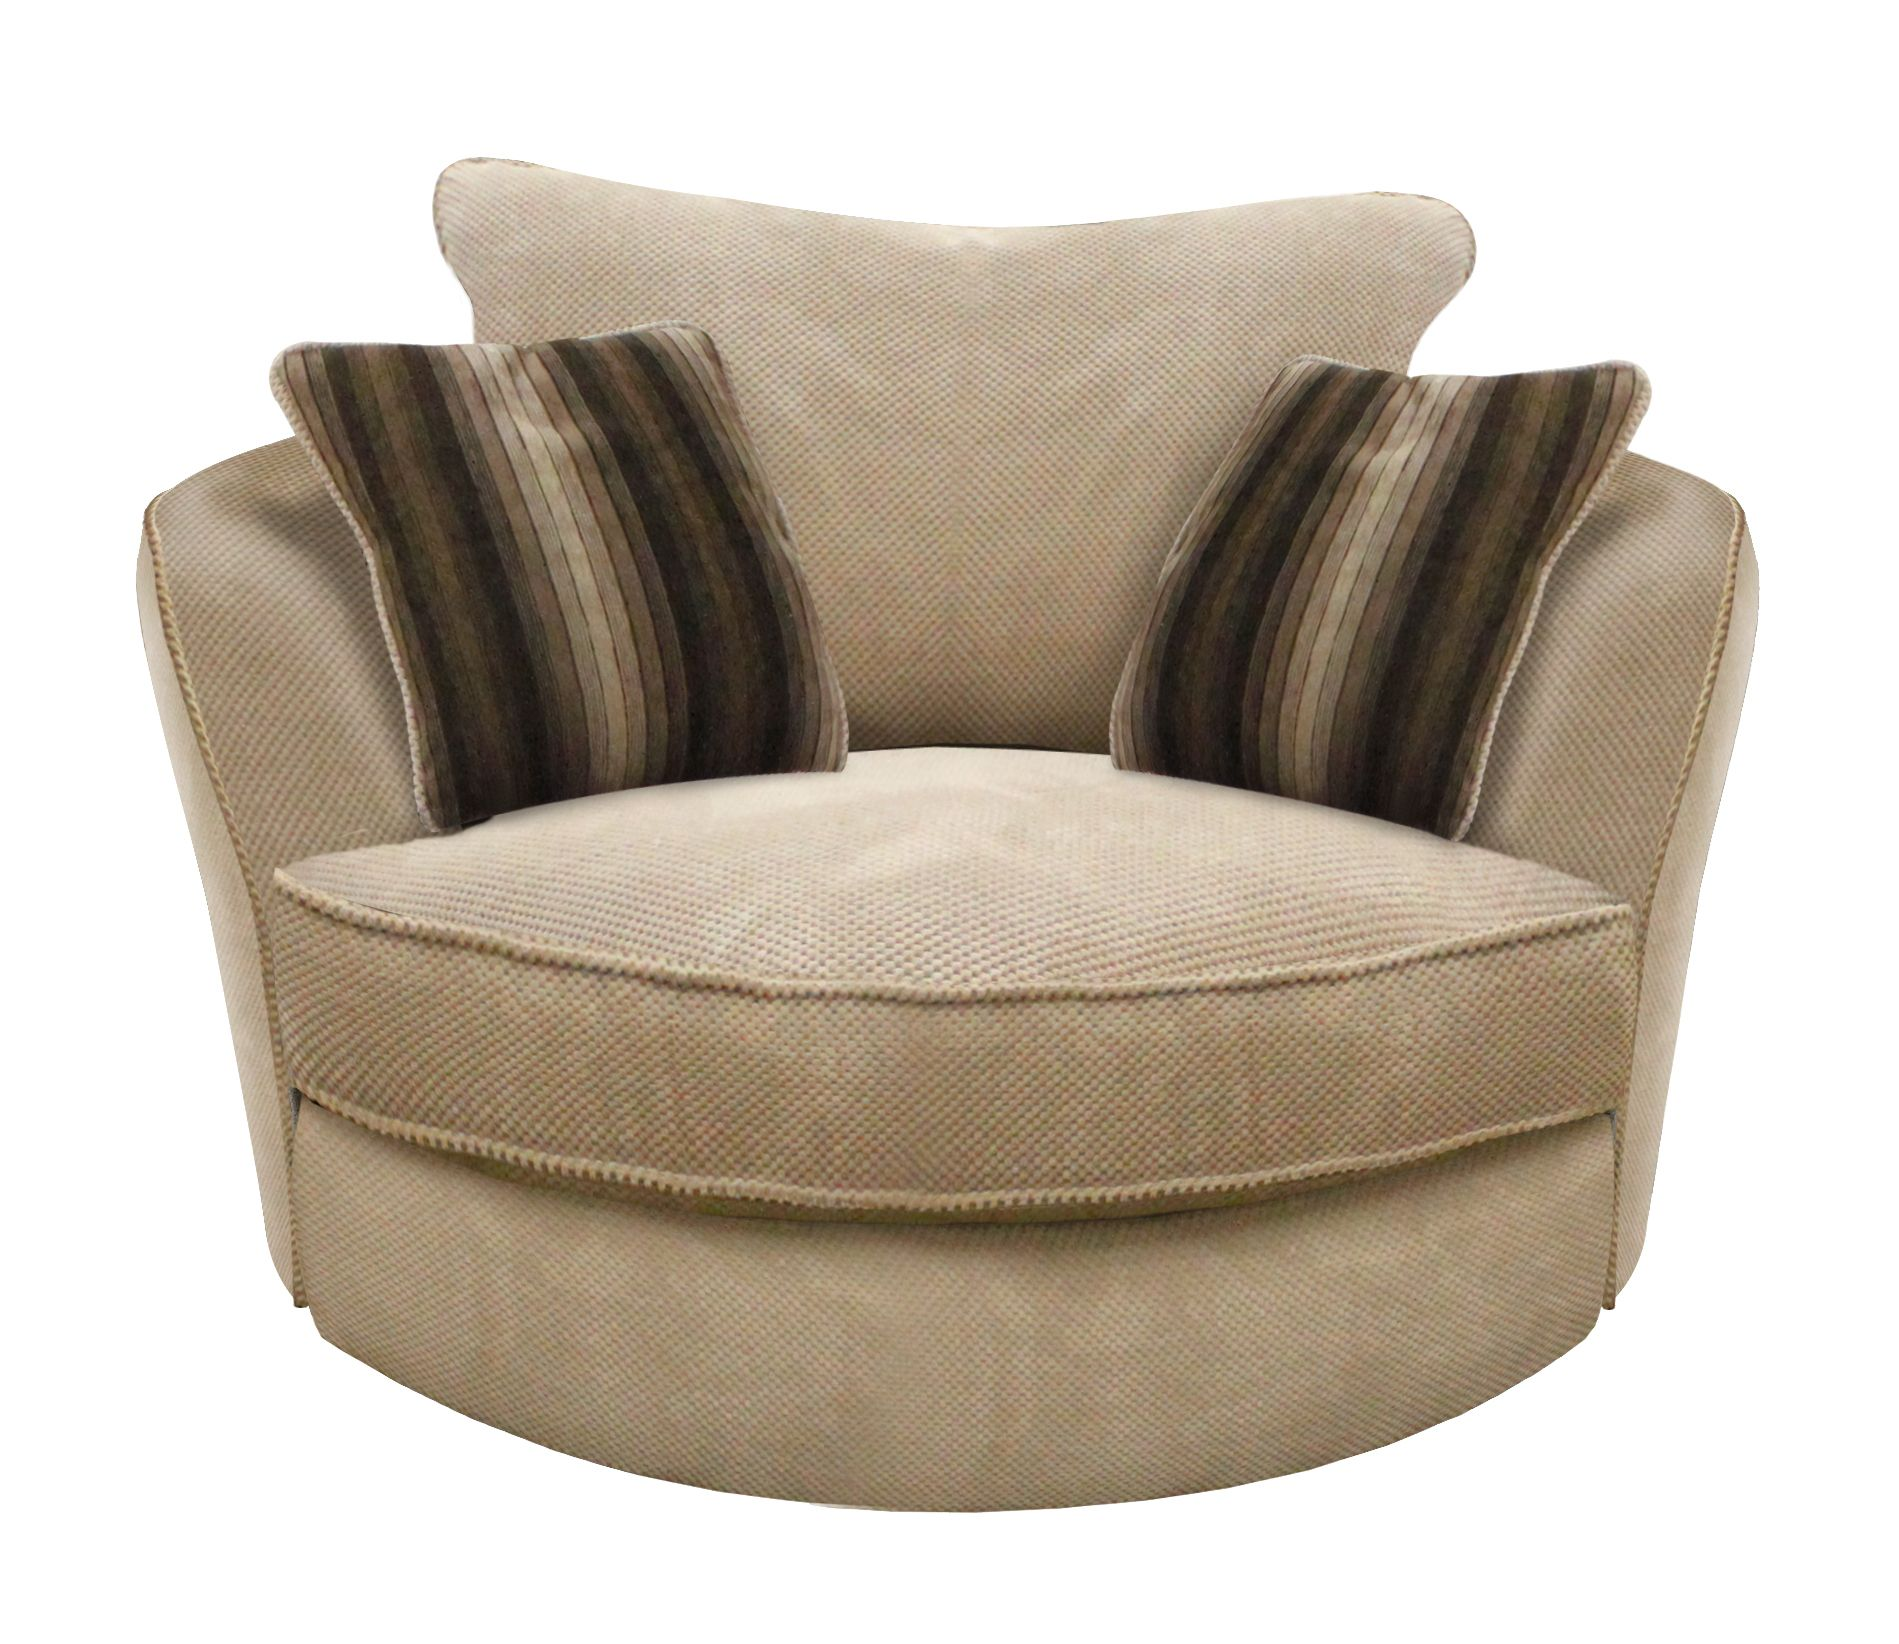 Montana swivel snuggler chair